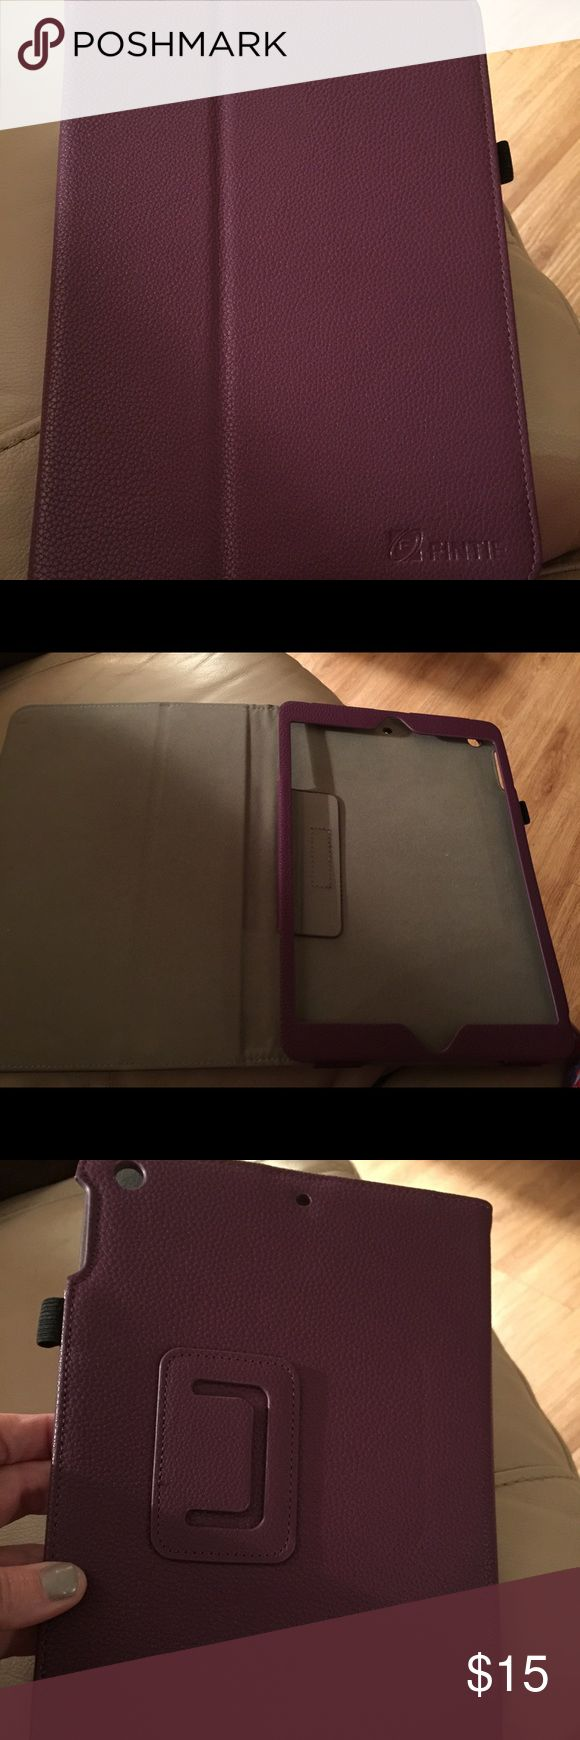 Finite iPad Air Folio Case Practically brand new deep purple PU leather folio for iPad Air (not Air 2) Magnetic sleep/wake close and stand for viewing. I bought it and then got the iPad Air 2 for Christmas. Accessories Laptop Cases